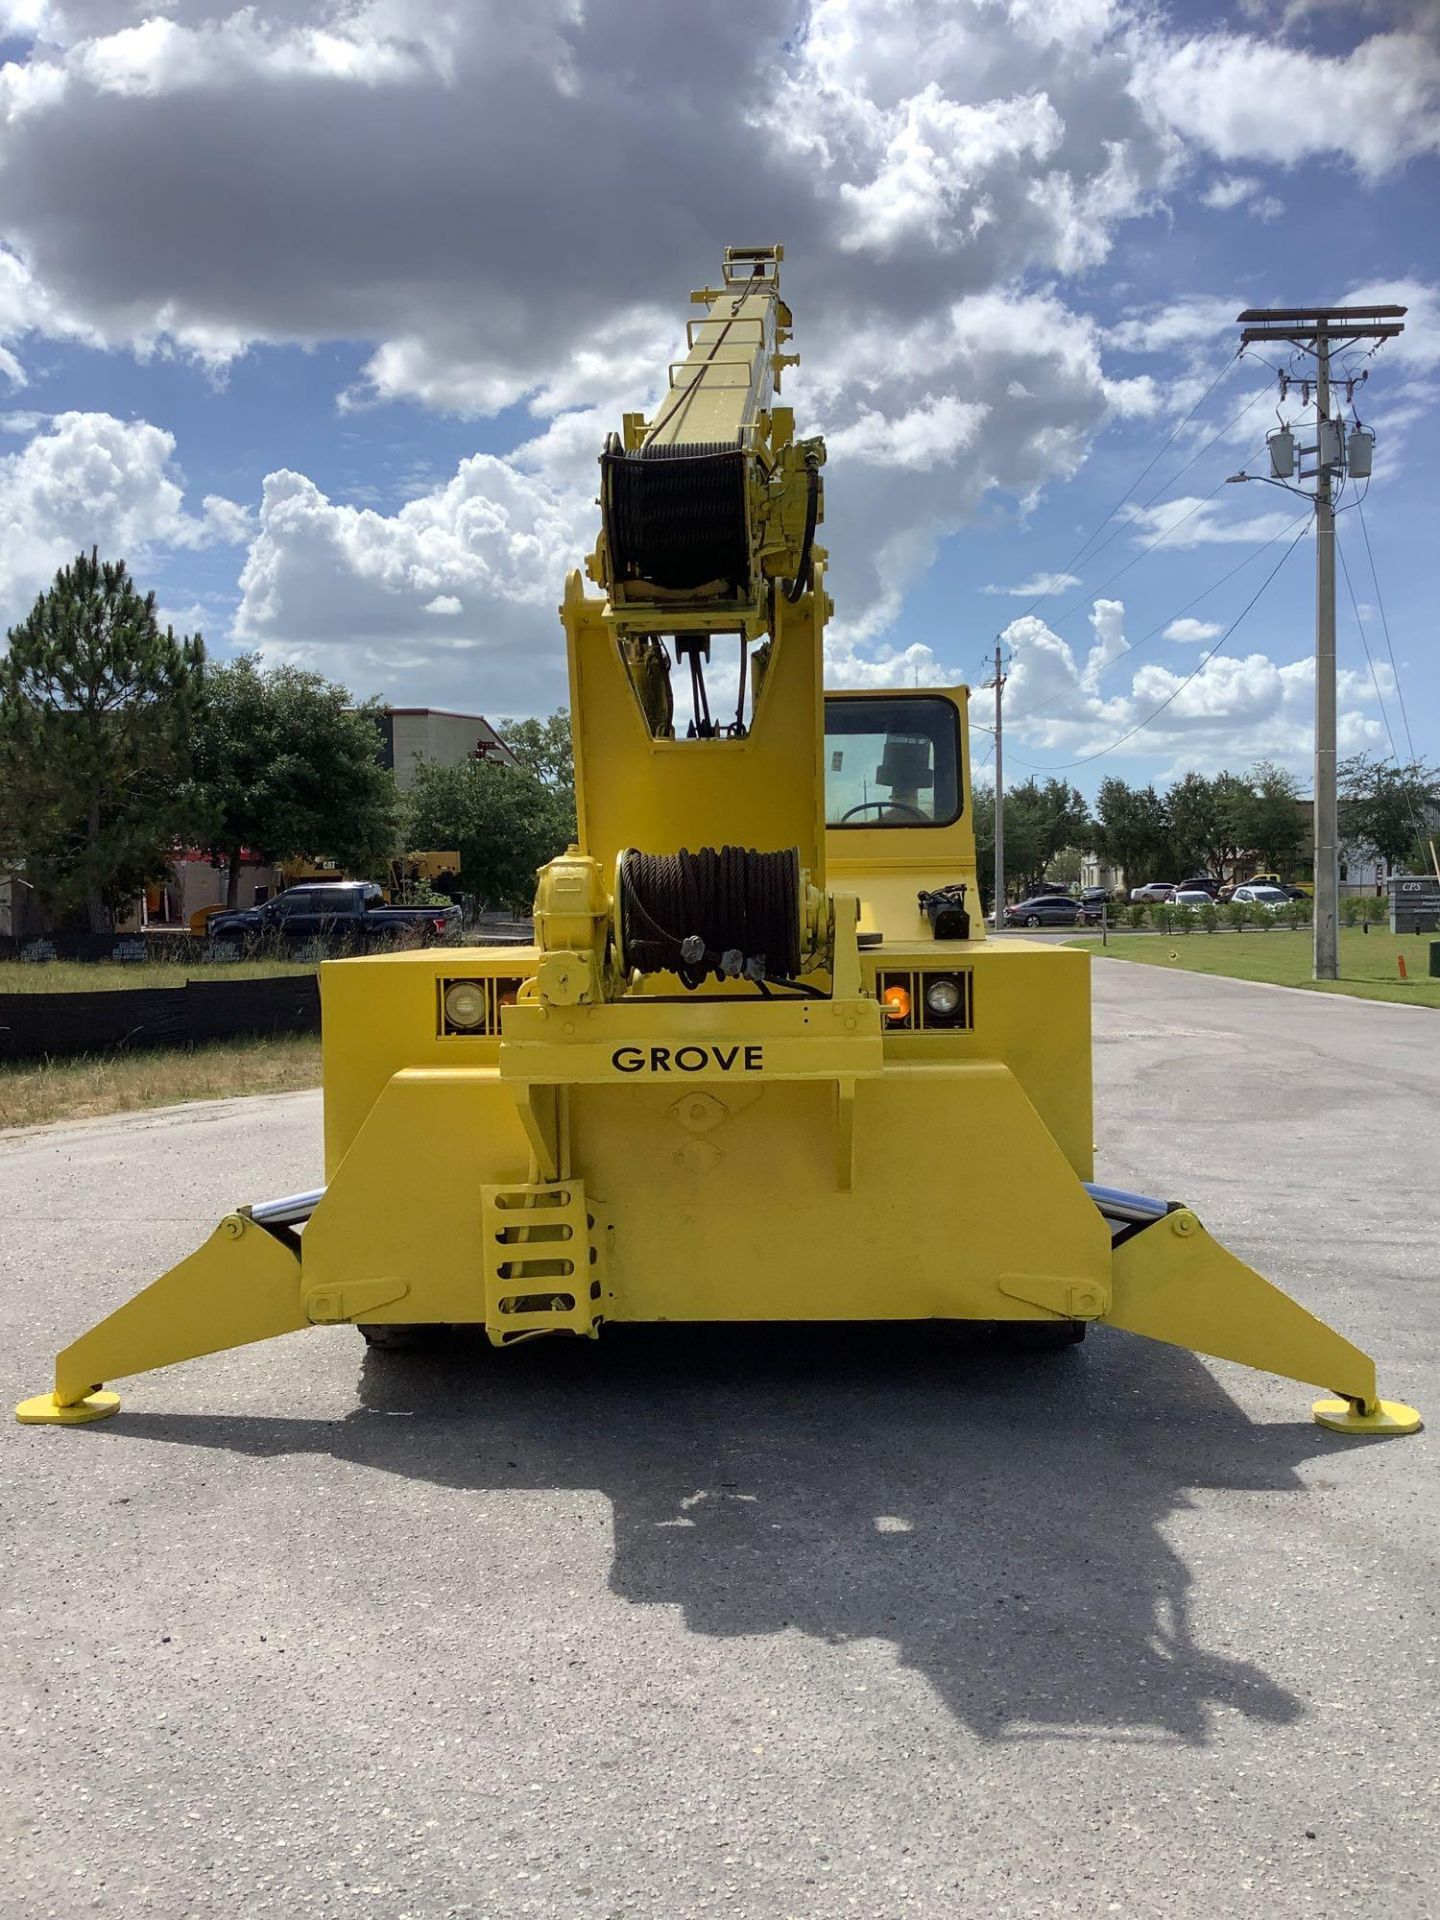 GROVE TRUCK CRANE MODEL IND1012, HYDRAULIC, TELESCOPIC, DIESEL,OUTRIGGER, RUNS AND OPERATES - Image 4 of 18